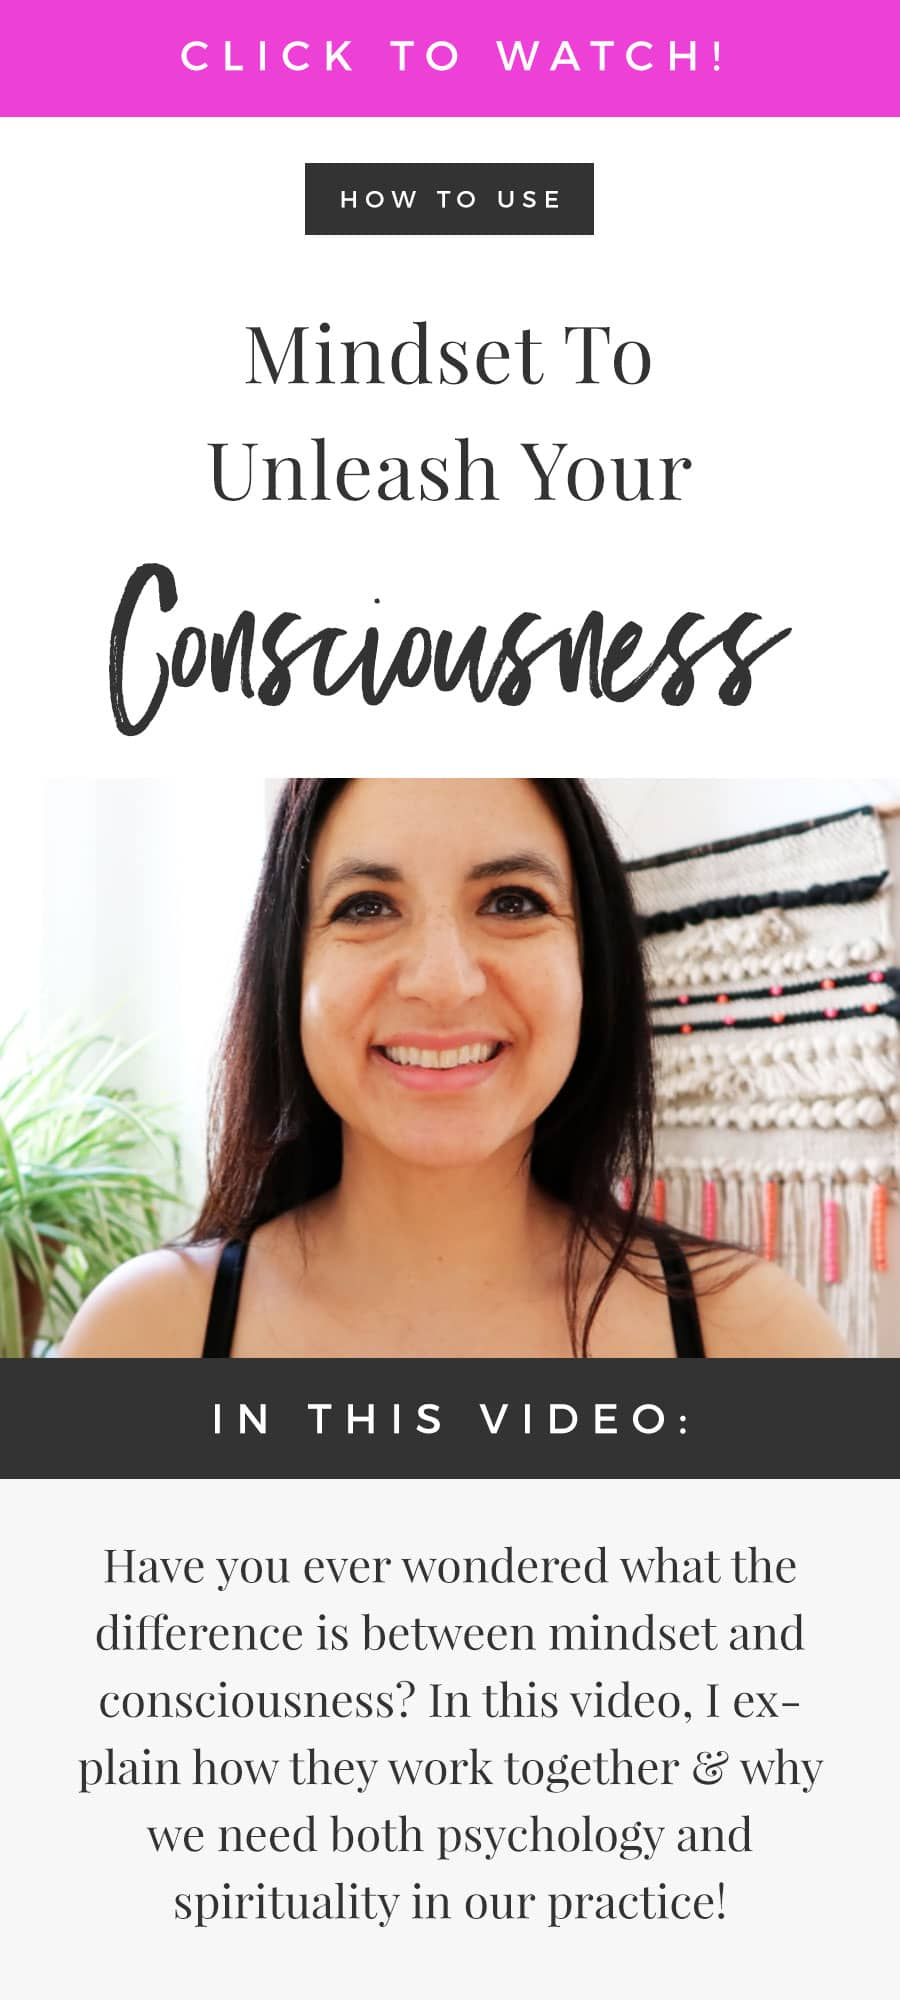 How To Use Mindset To Unleash Their Consciousness